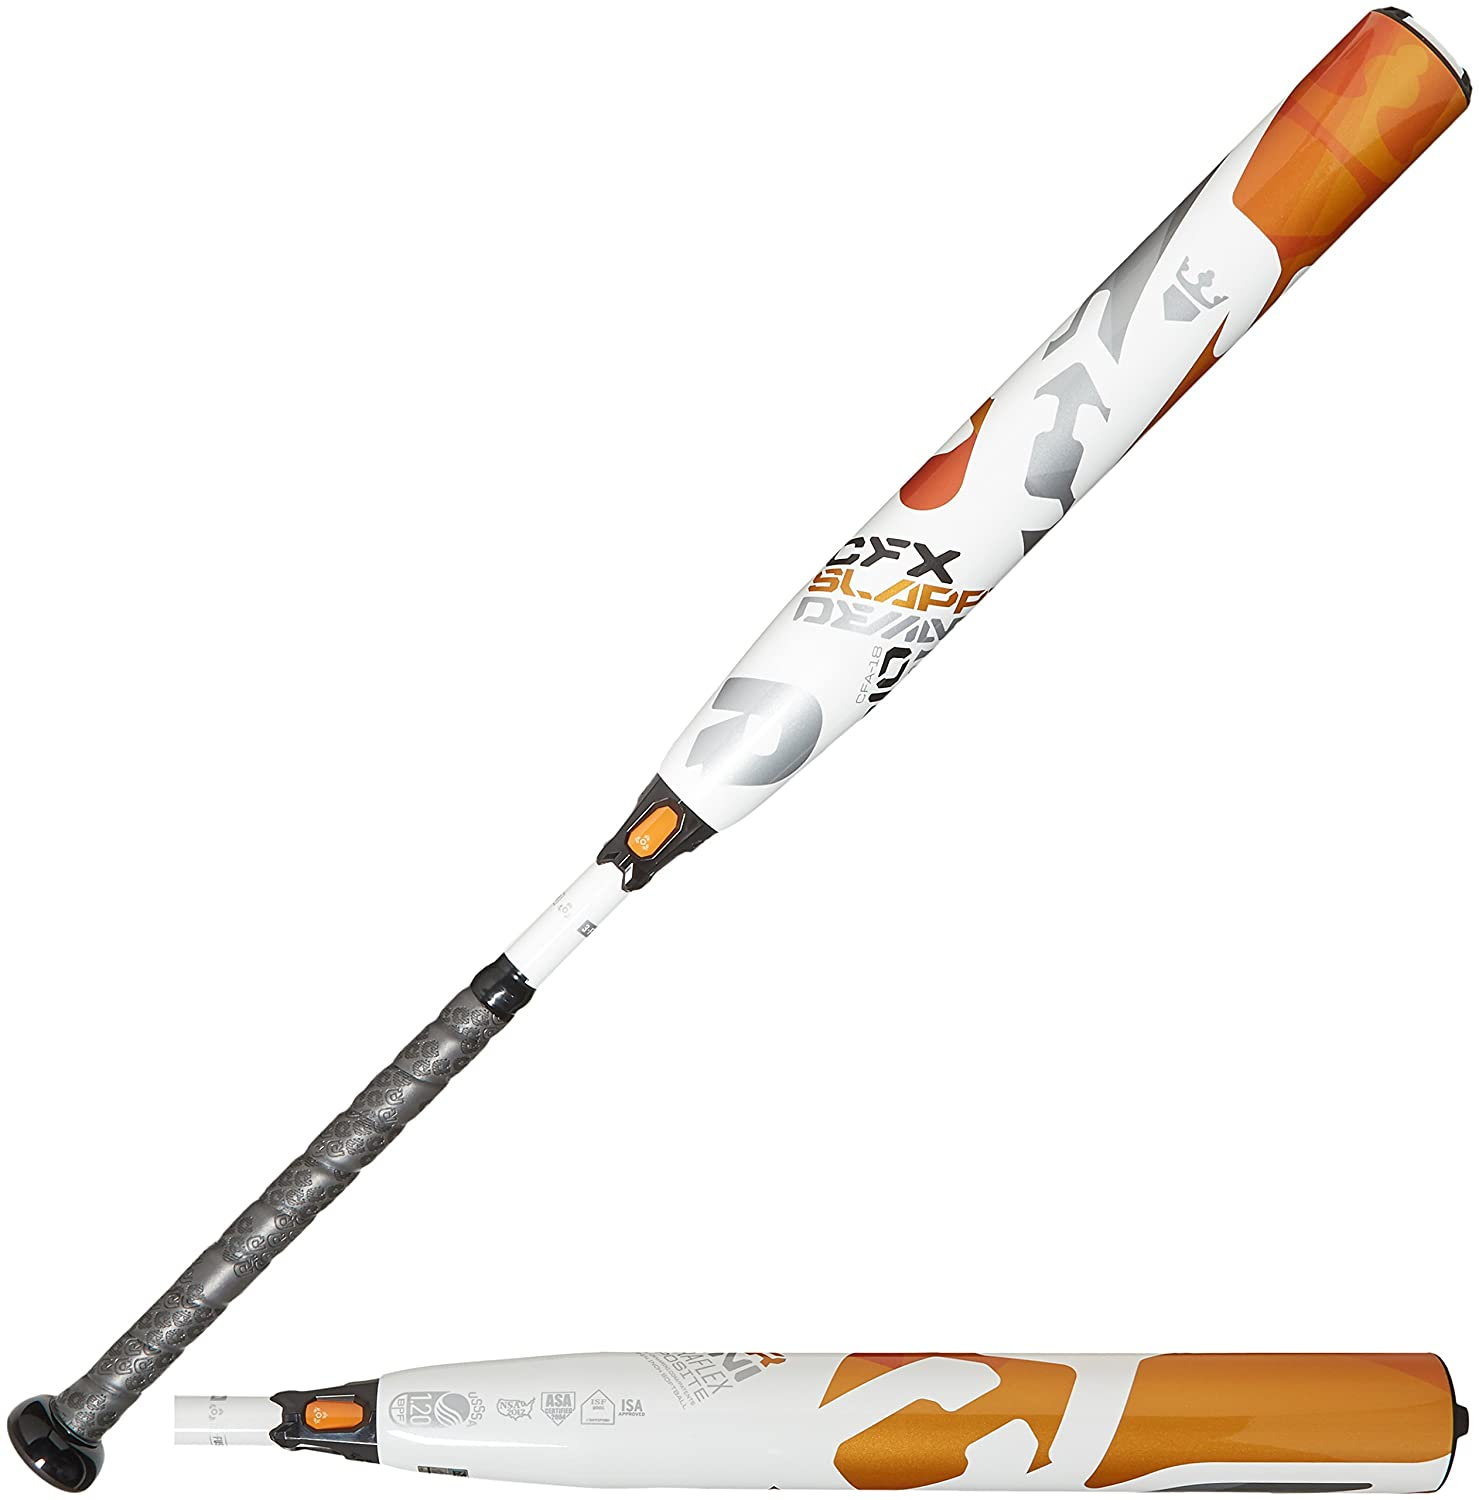 Top 5 Best Softball Bats Reviews In 2018 Market Updated January 2019